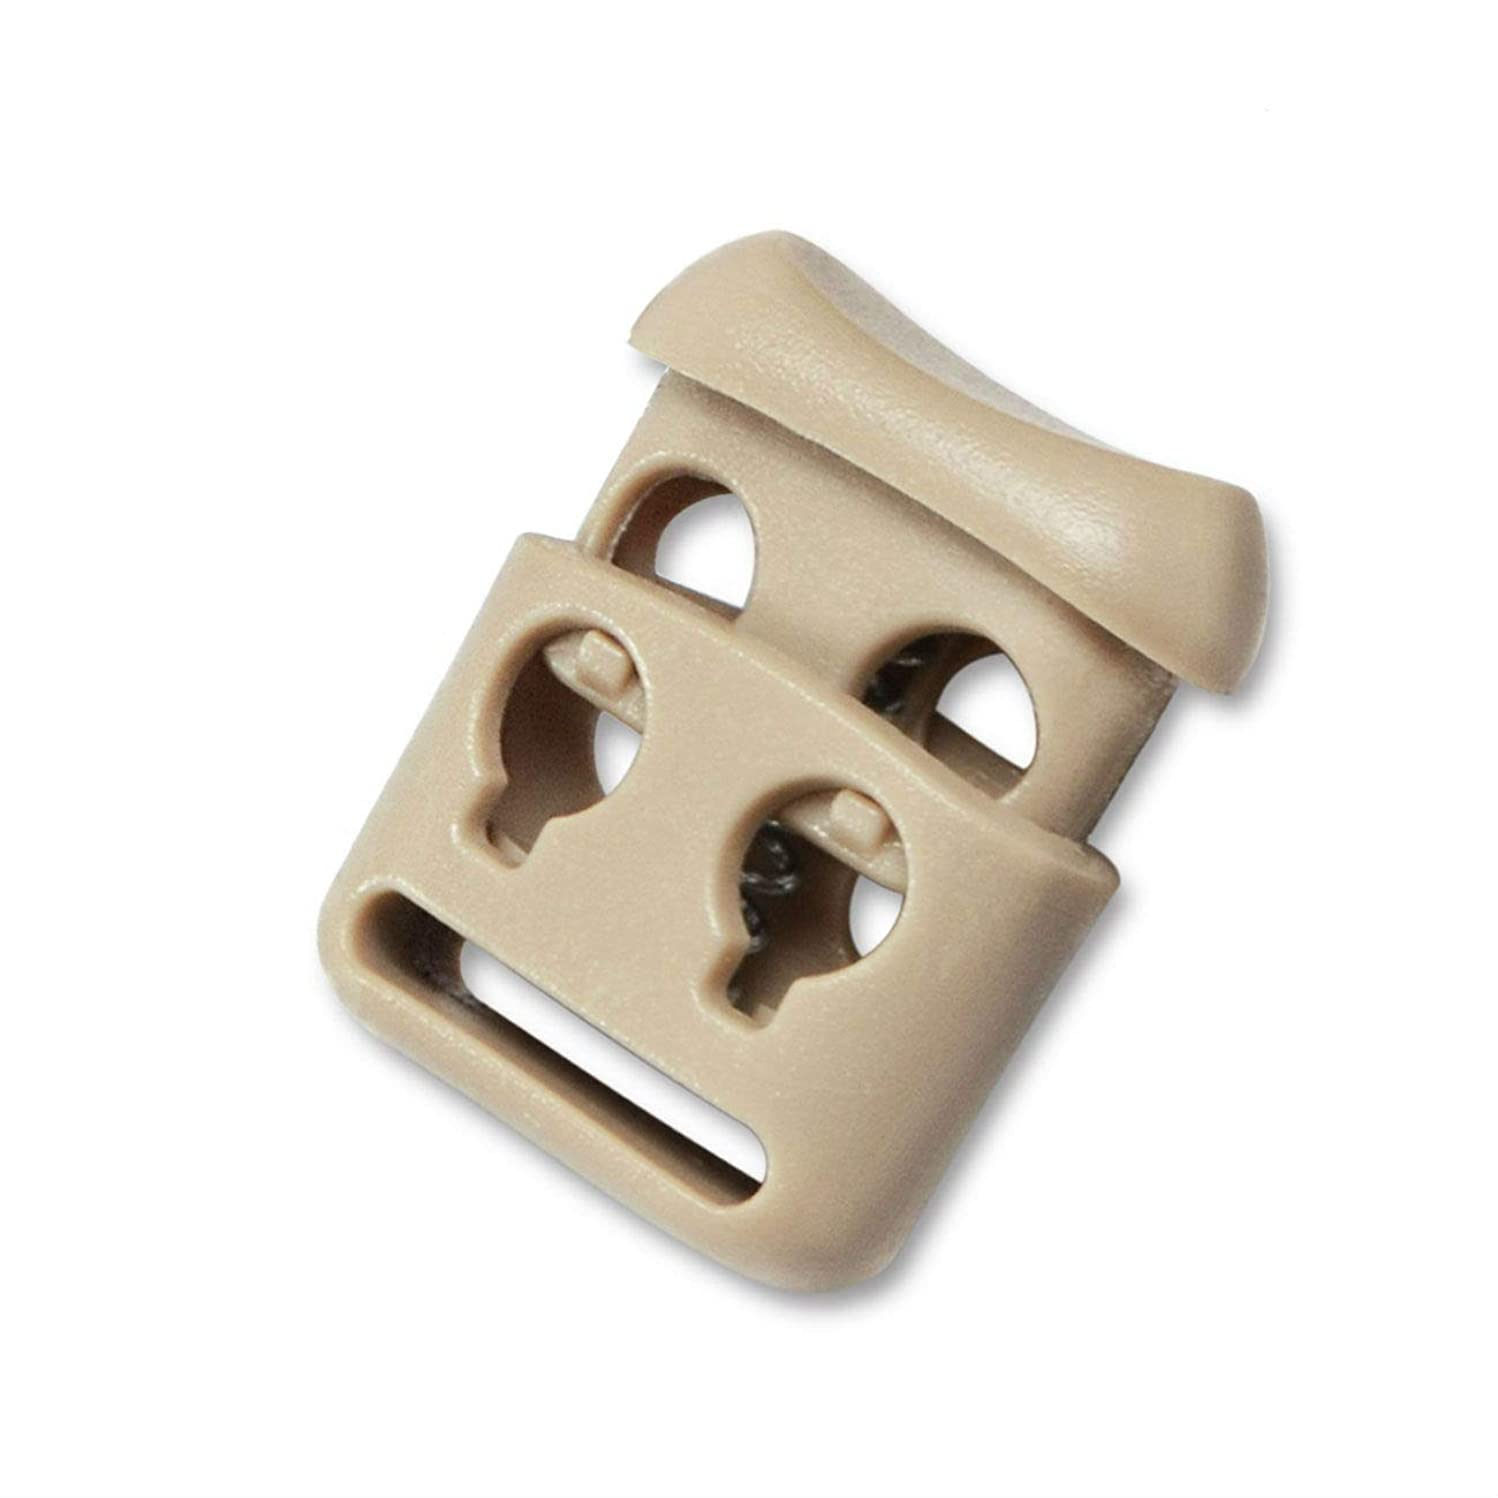 Double Hole Plastic Cord Locks End Spring Stop Toggle Stoppers Multi-Colour (10PCS, Khaki)